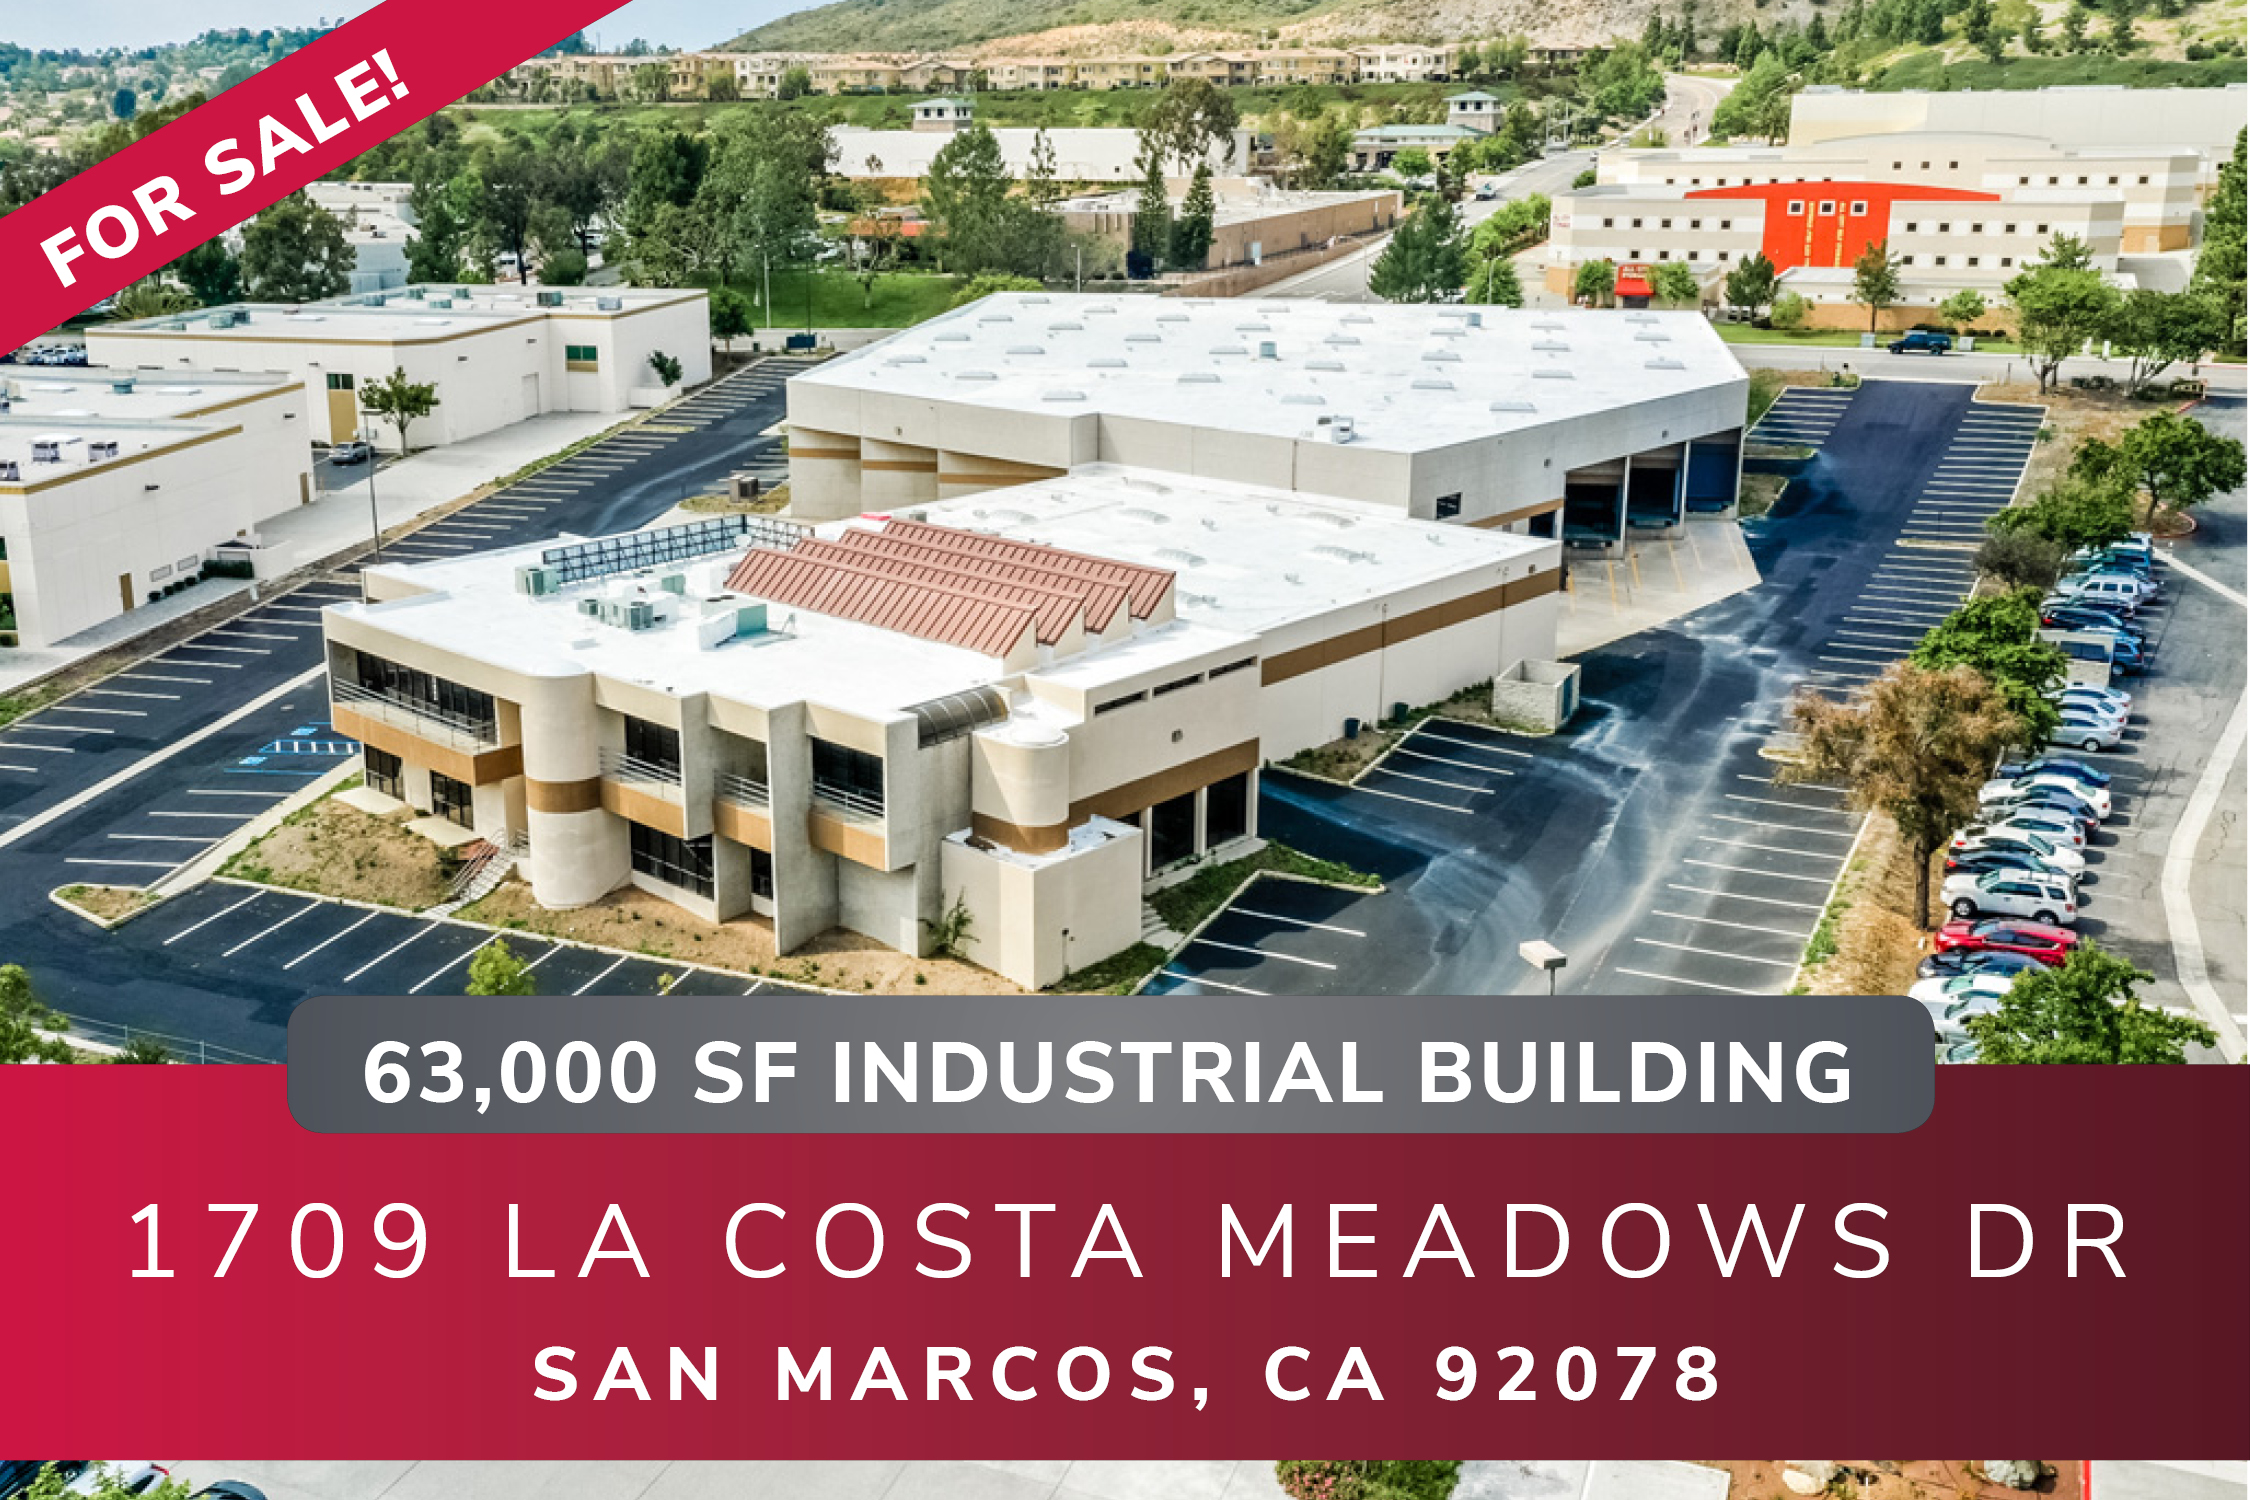 San Marcos Industrial Building For Sale